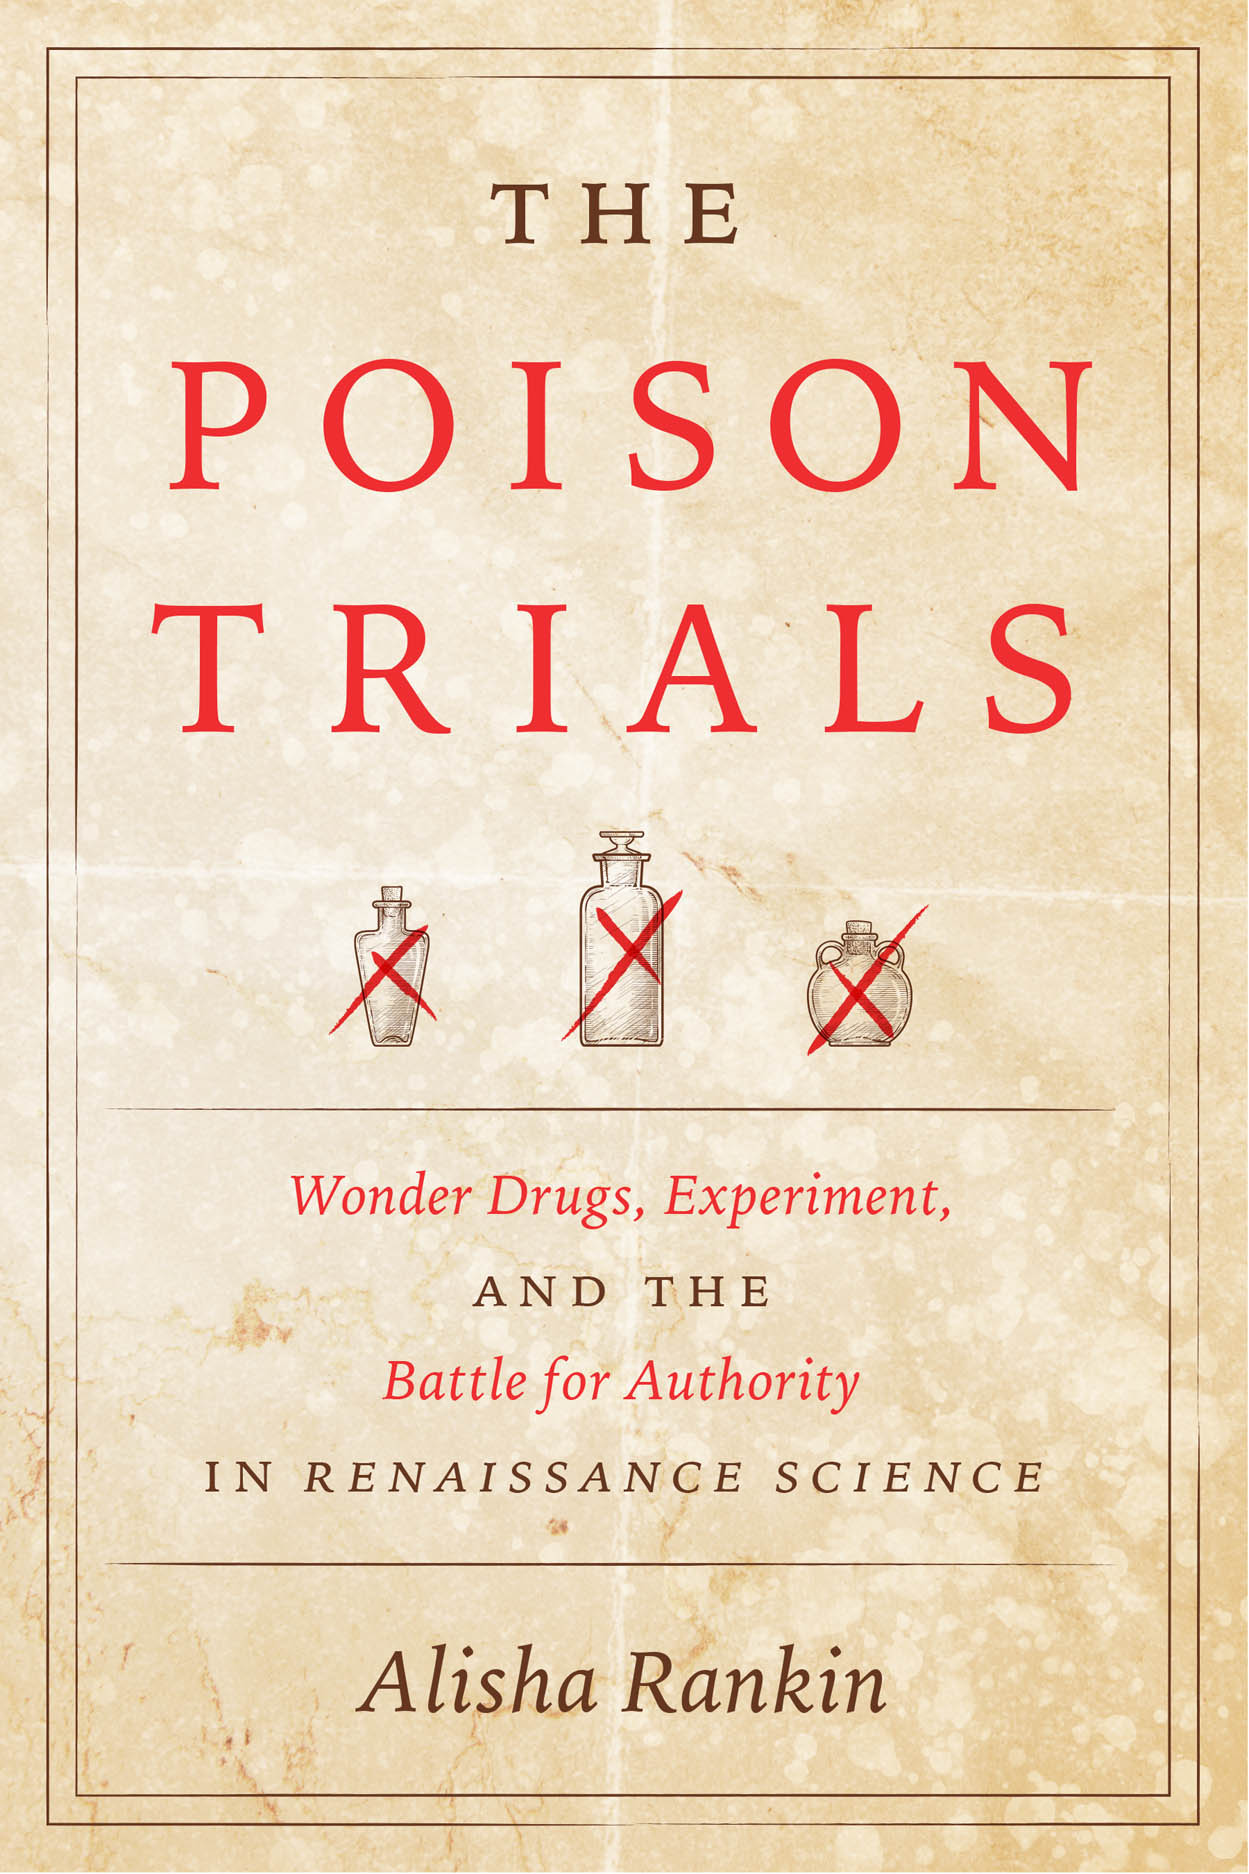 The Poison Trials: Wonder Drugs, Experiment, and the Battle for Authority in Renaissance Science